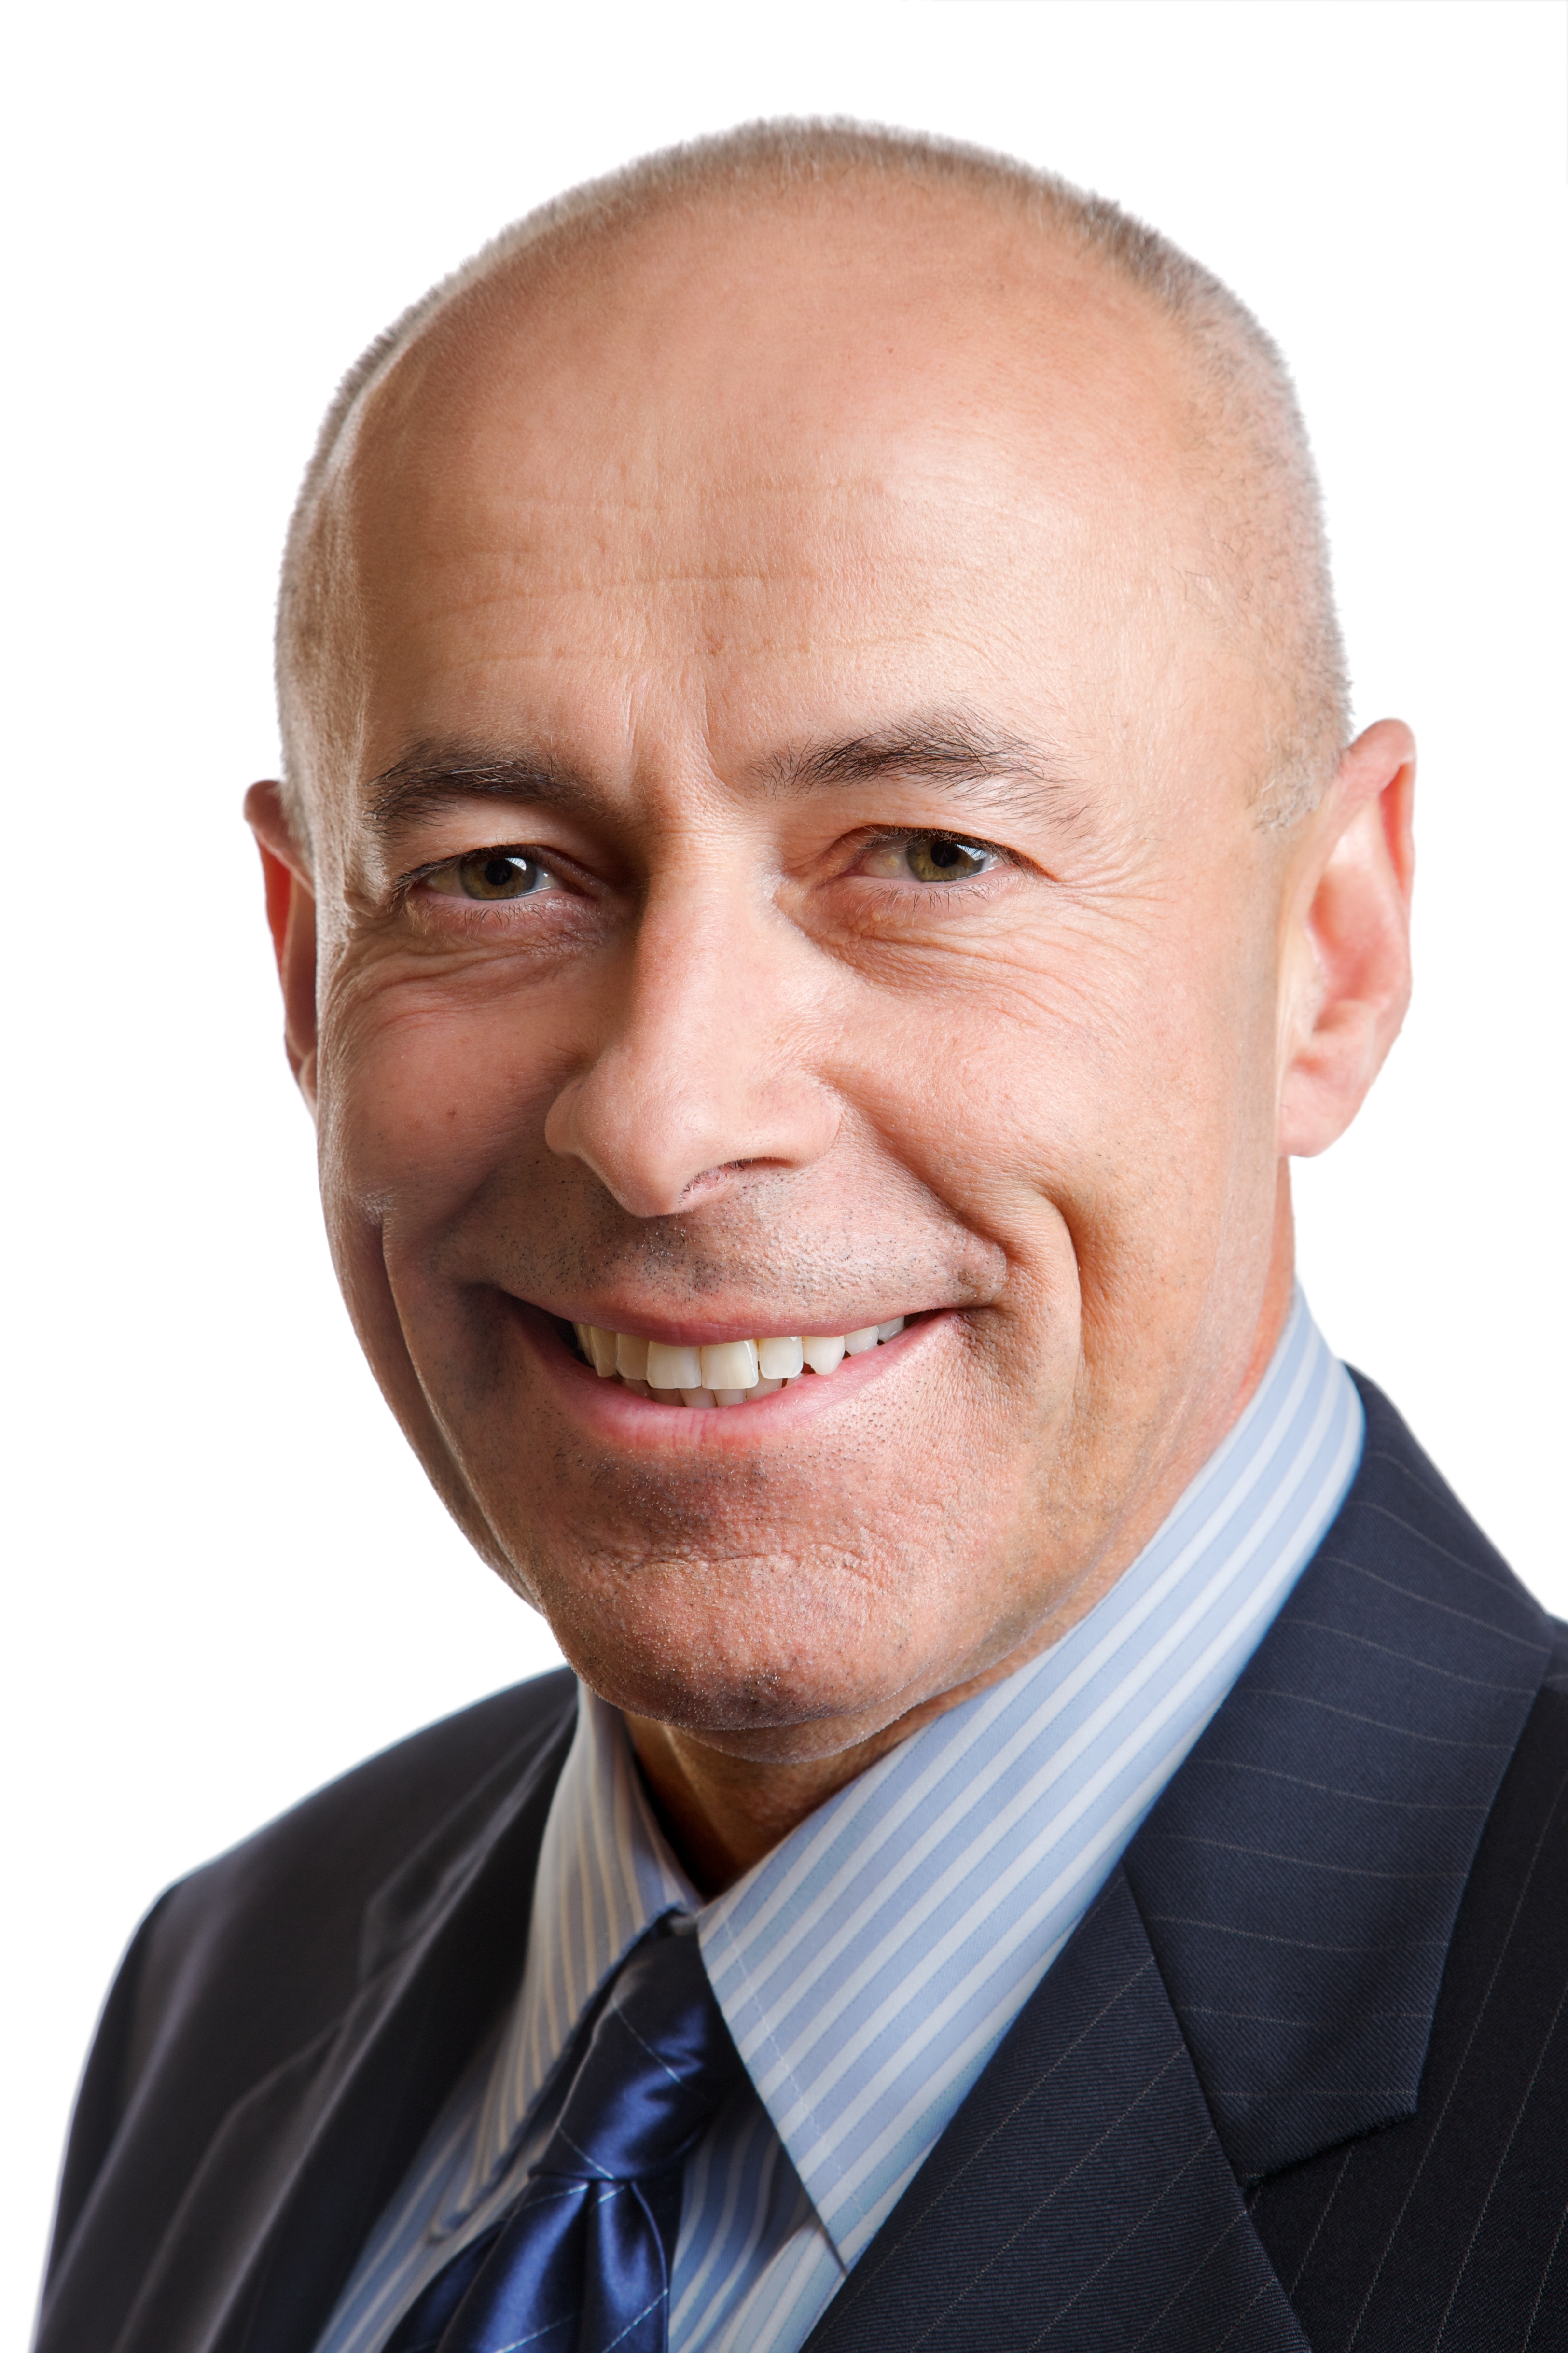 John Schwarz, Chief Executive Officer Business Objects, an SAP company on July 31, 2008.